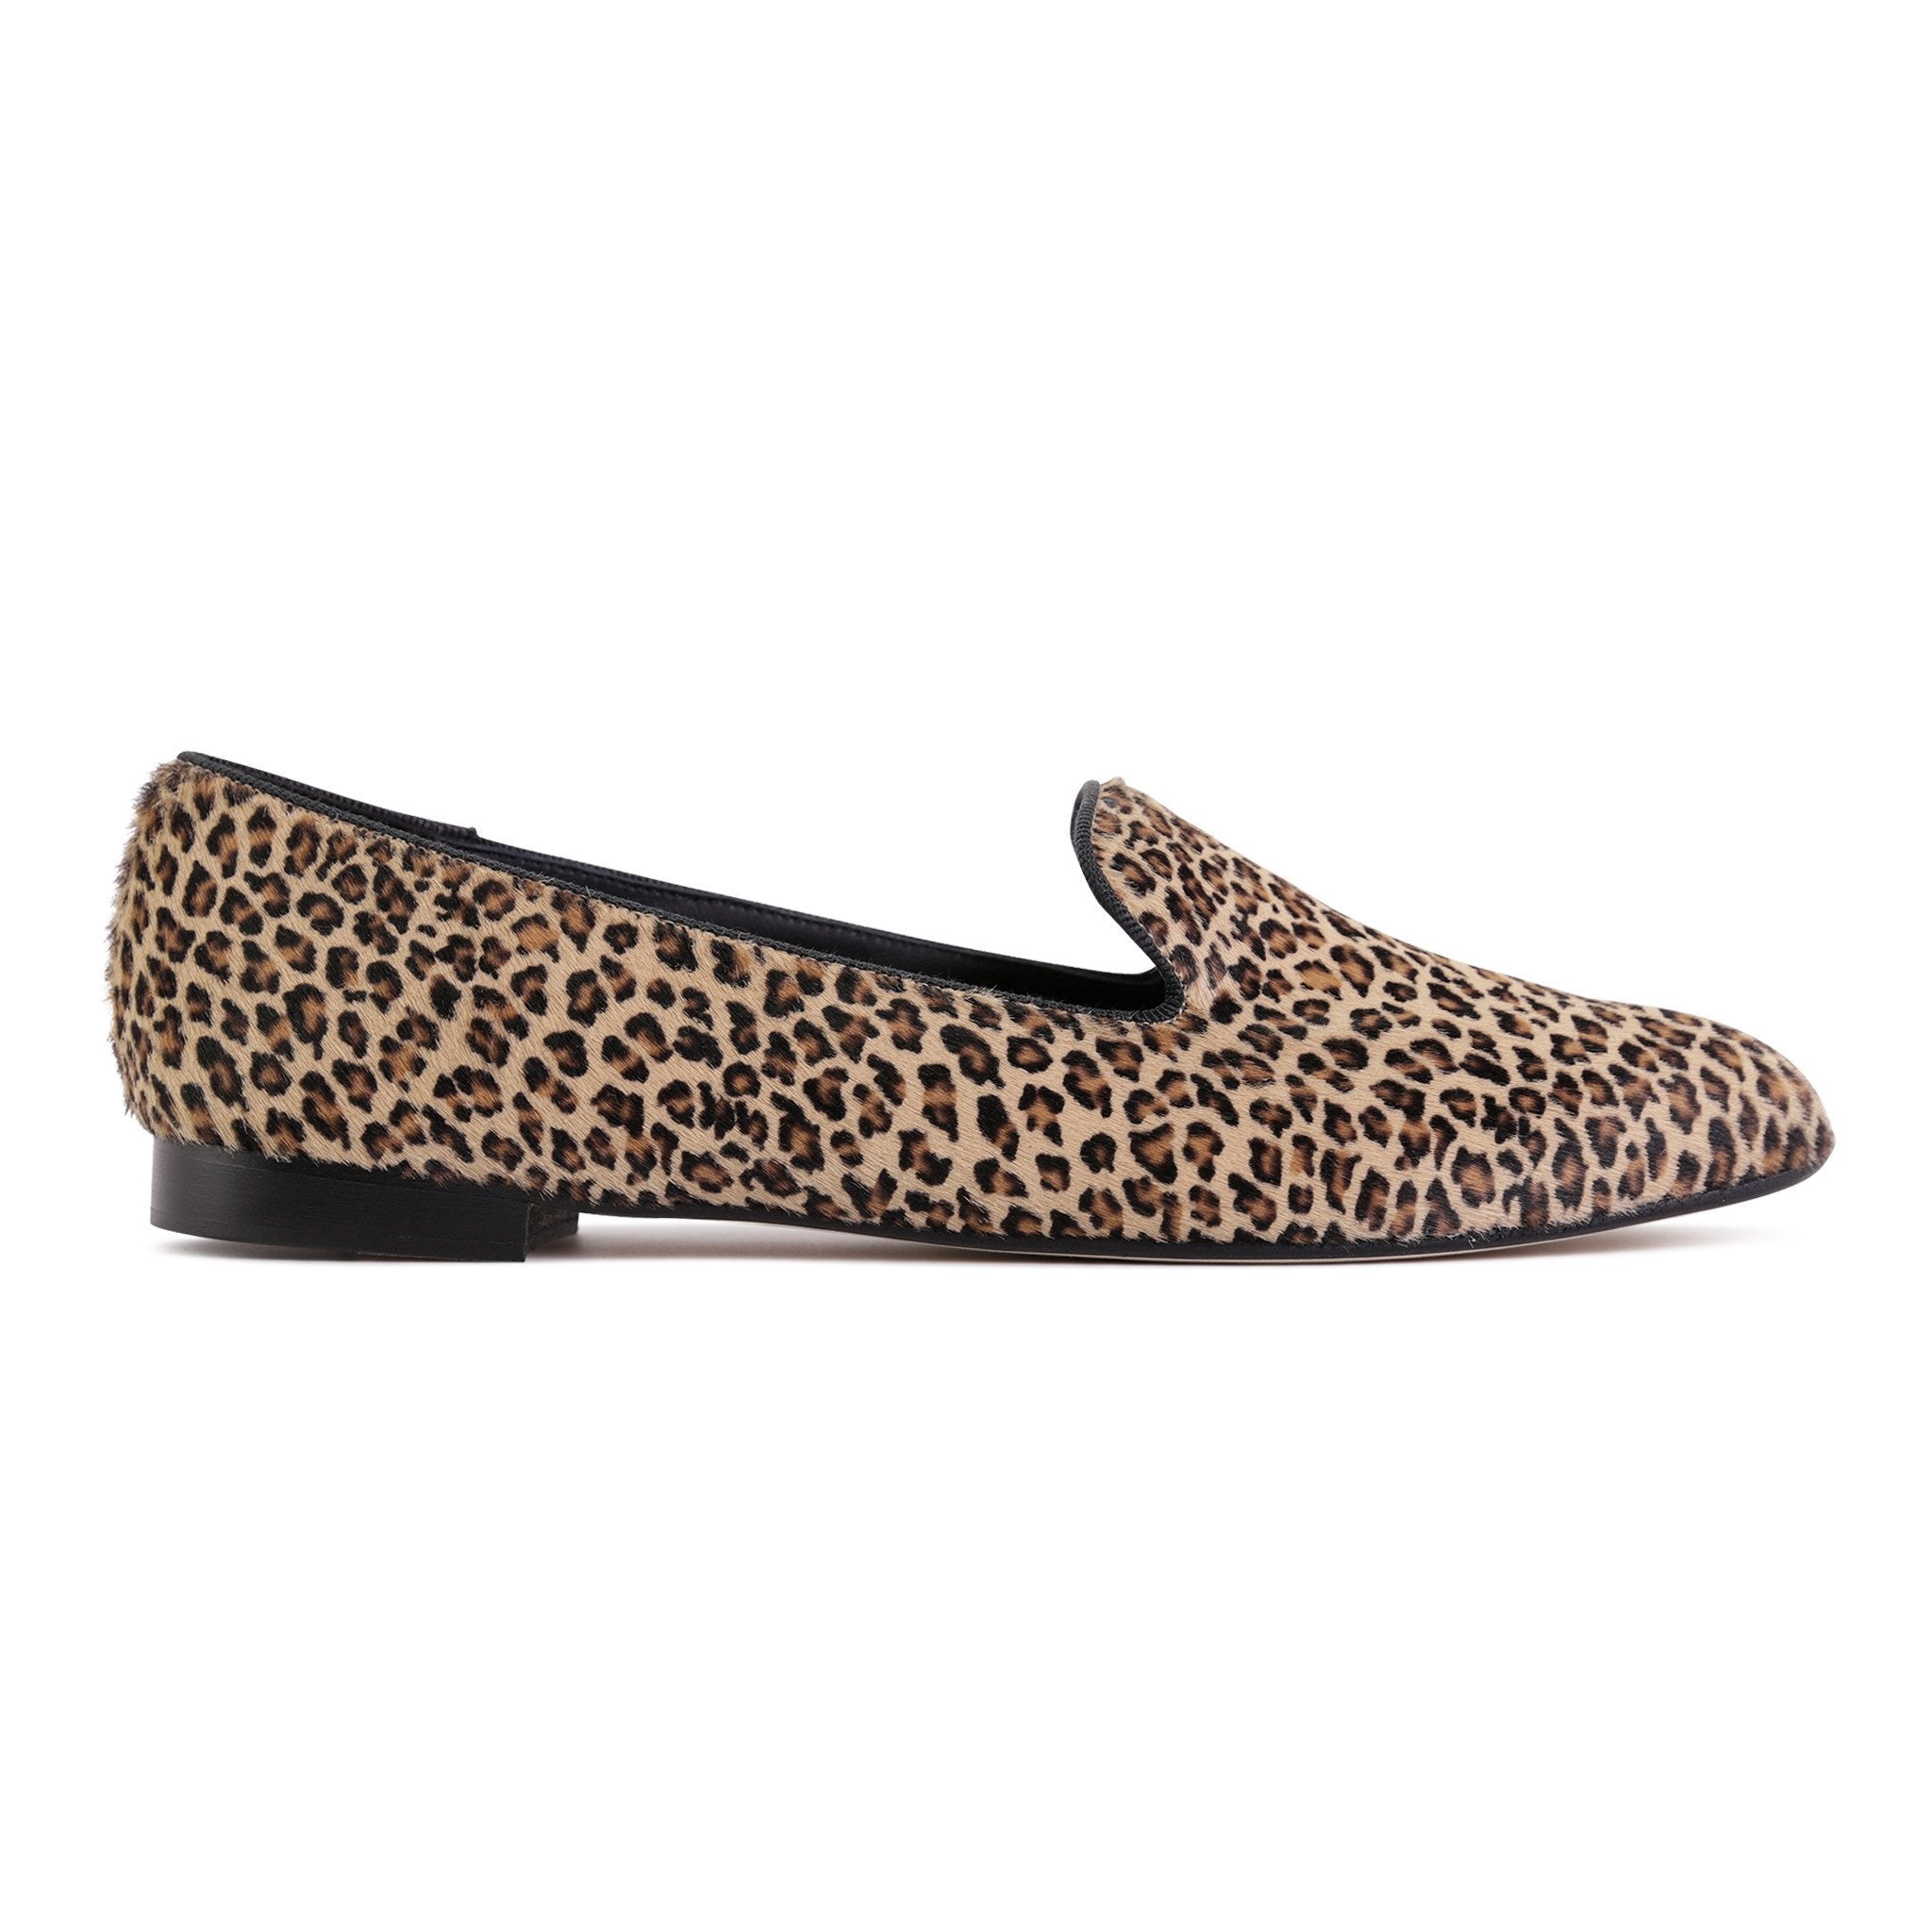 RAVENNA - Calf Hair Dune Minipard, VIAJIYU - Women's Hand Made Sustainable Luxury Shoes. Made in Italy. Made to Order.